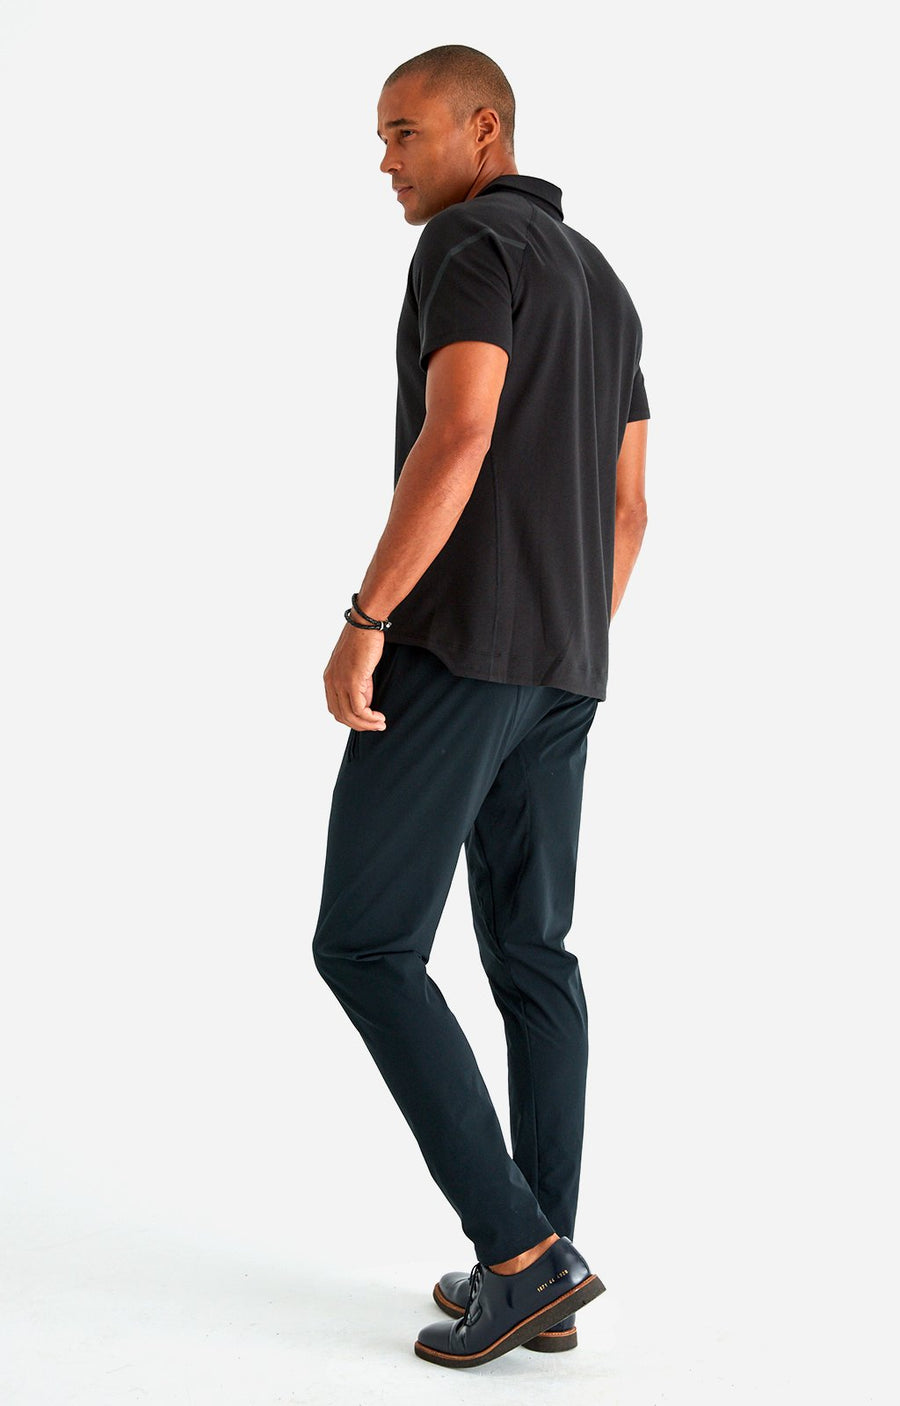 Paskho Minimalist – The Modern Tailored Travel Tech Pants in Black